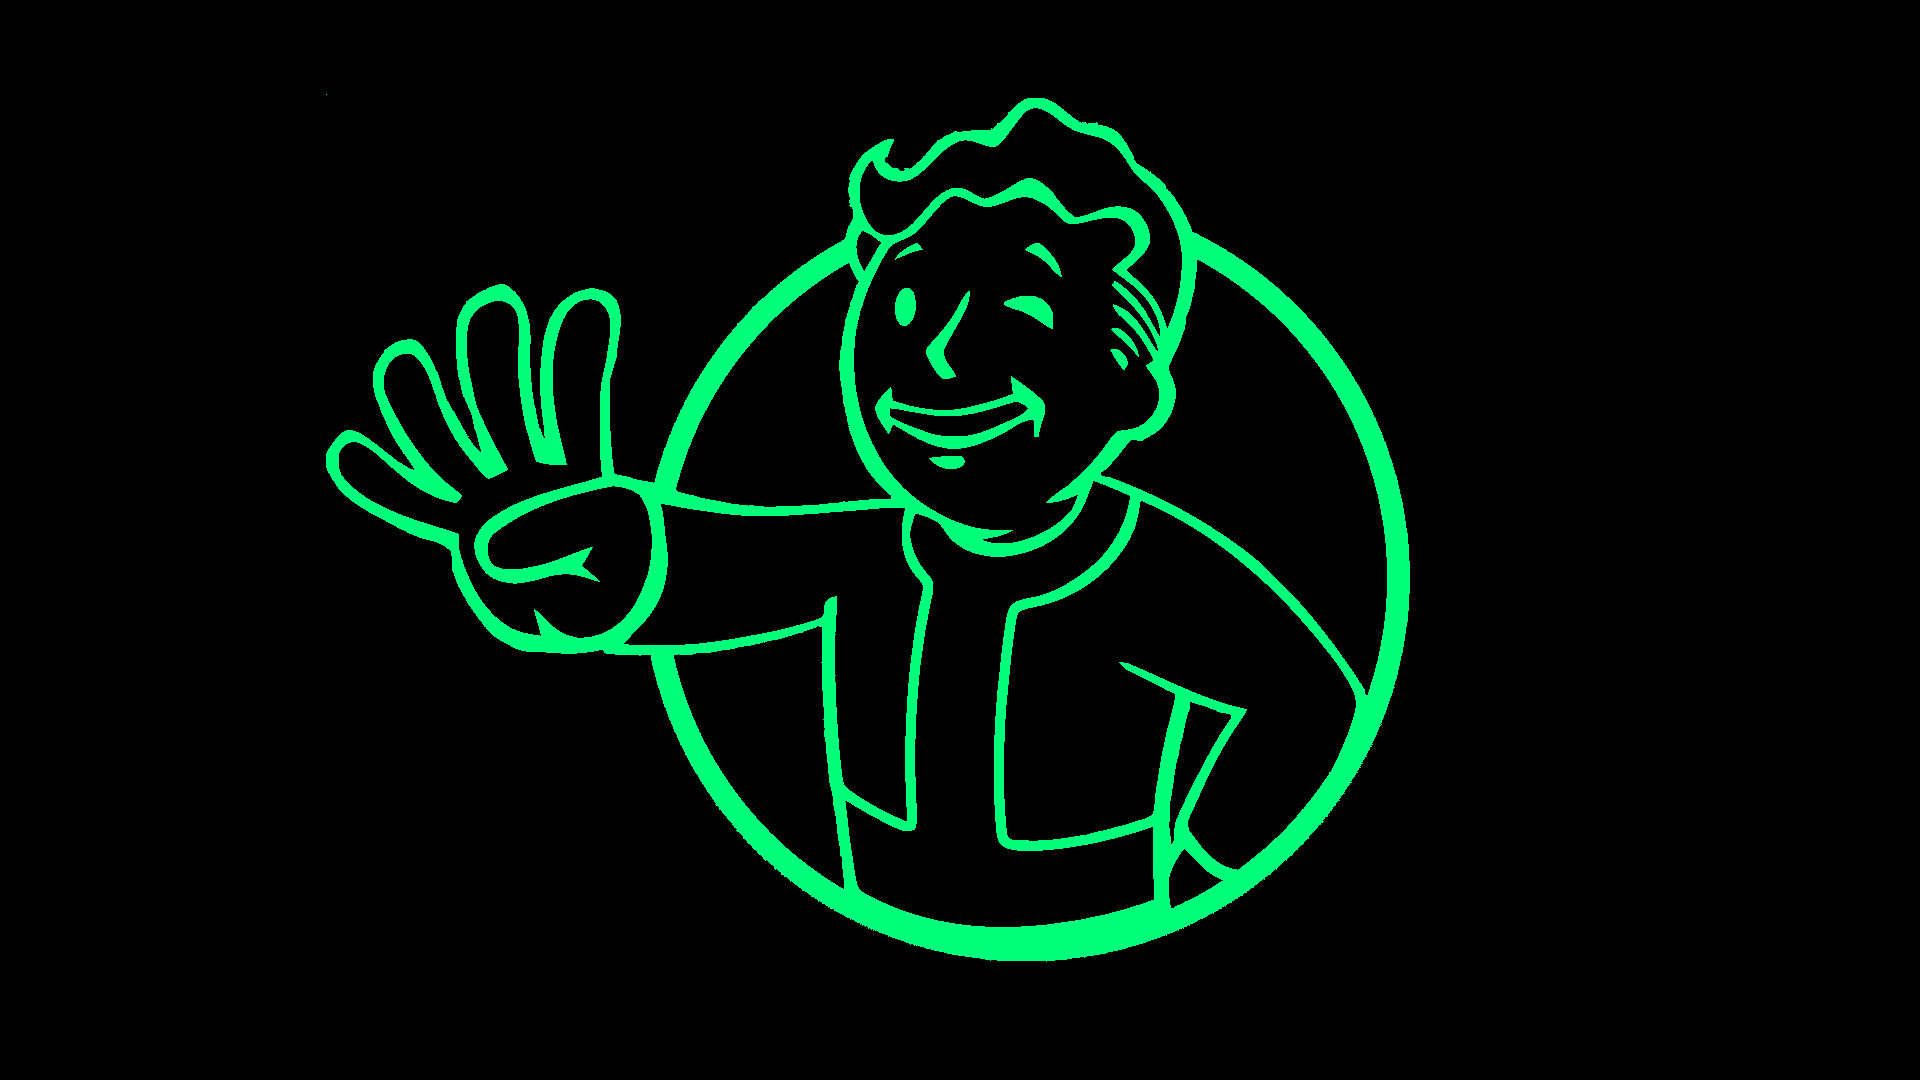 … fallout fallout 4 vault boy wallpapers hd desktop and mobile …